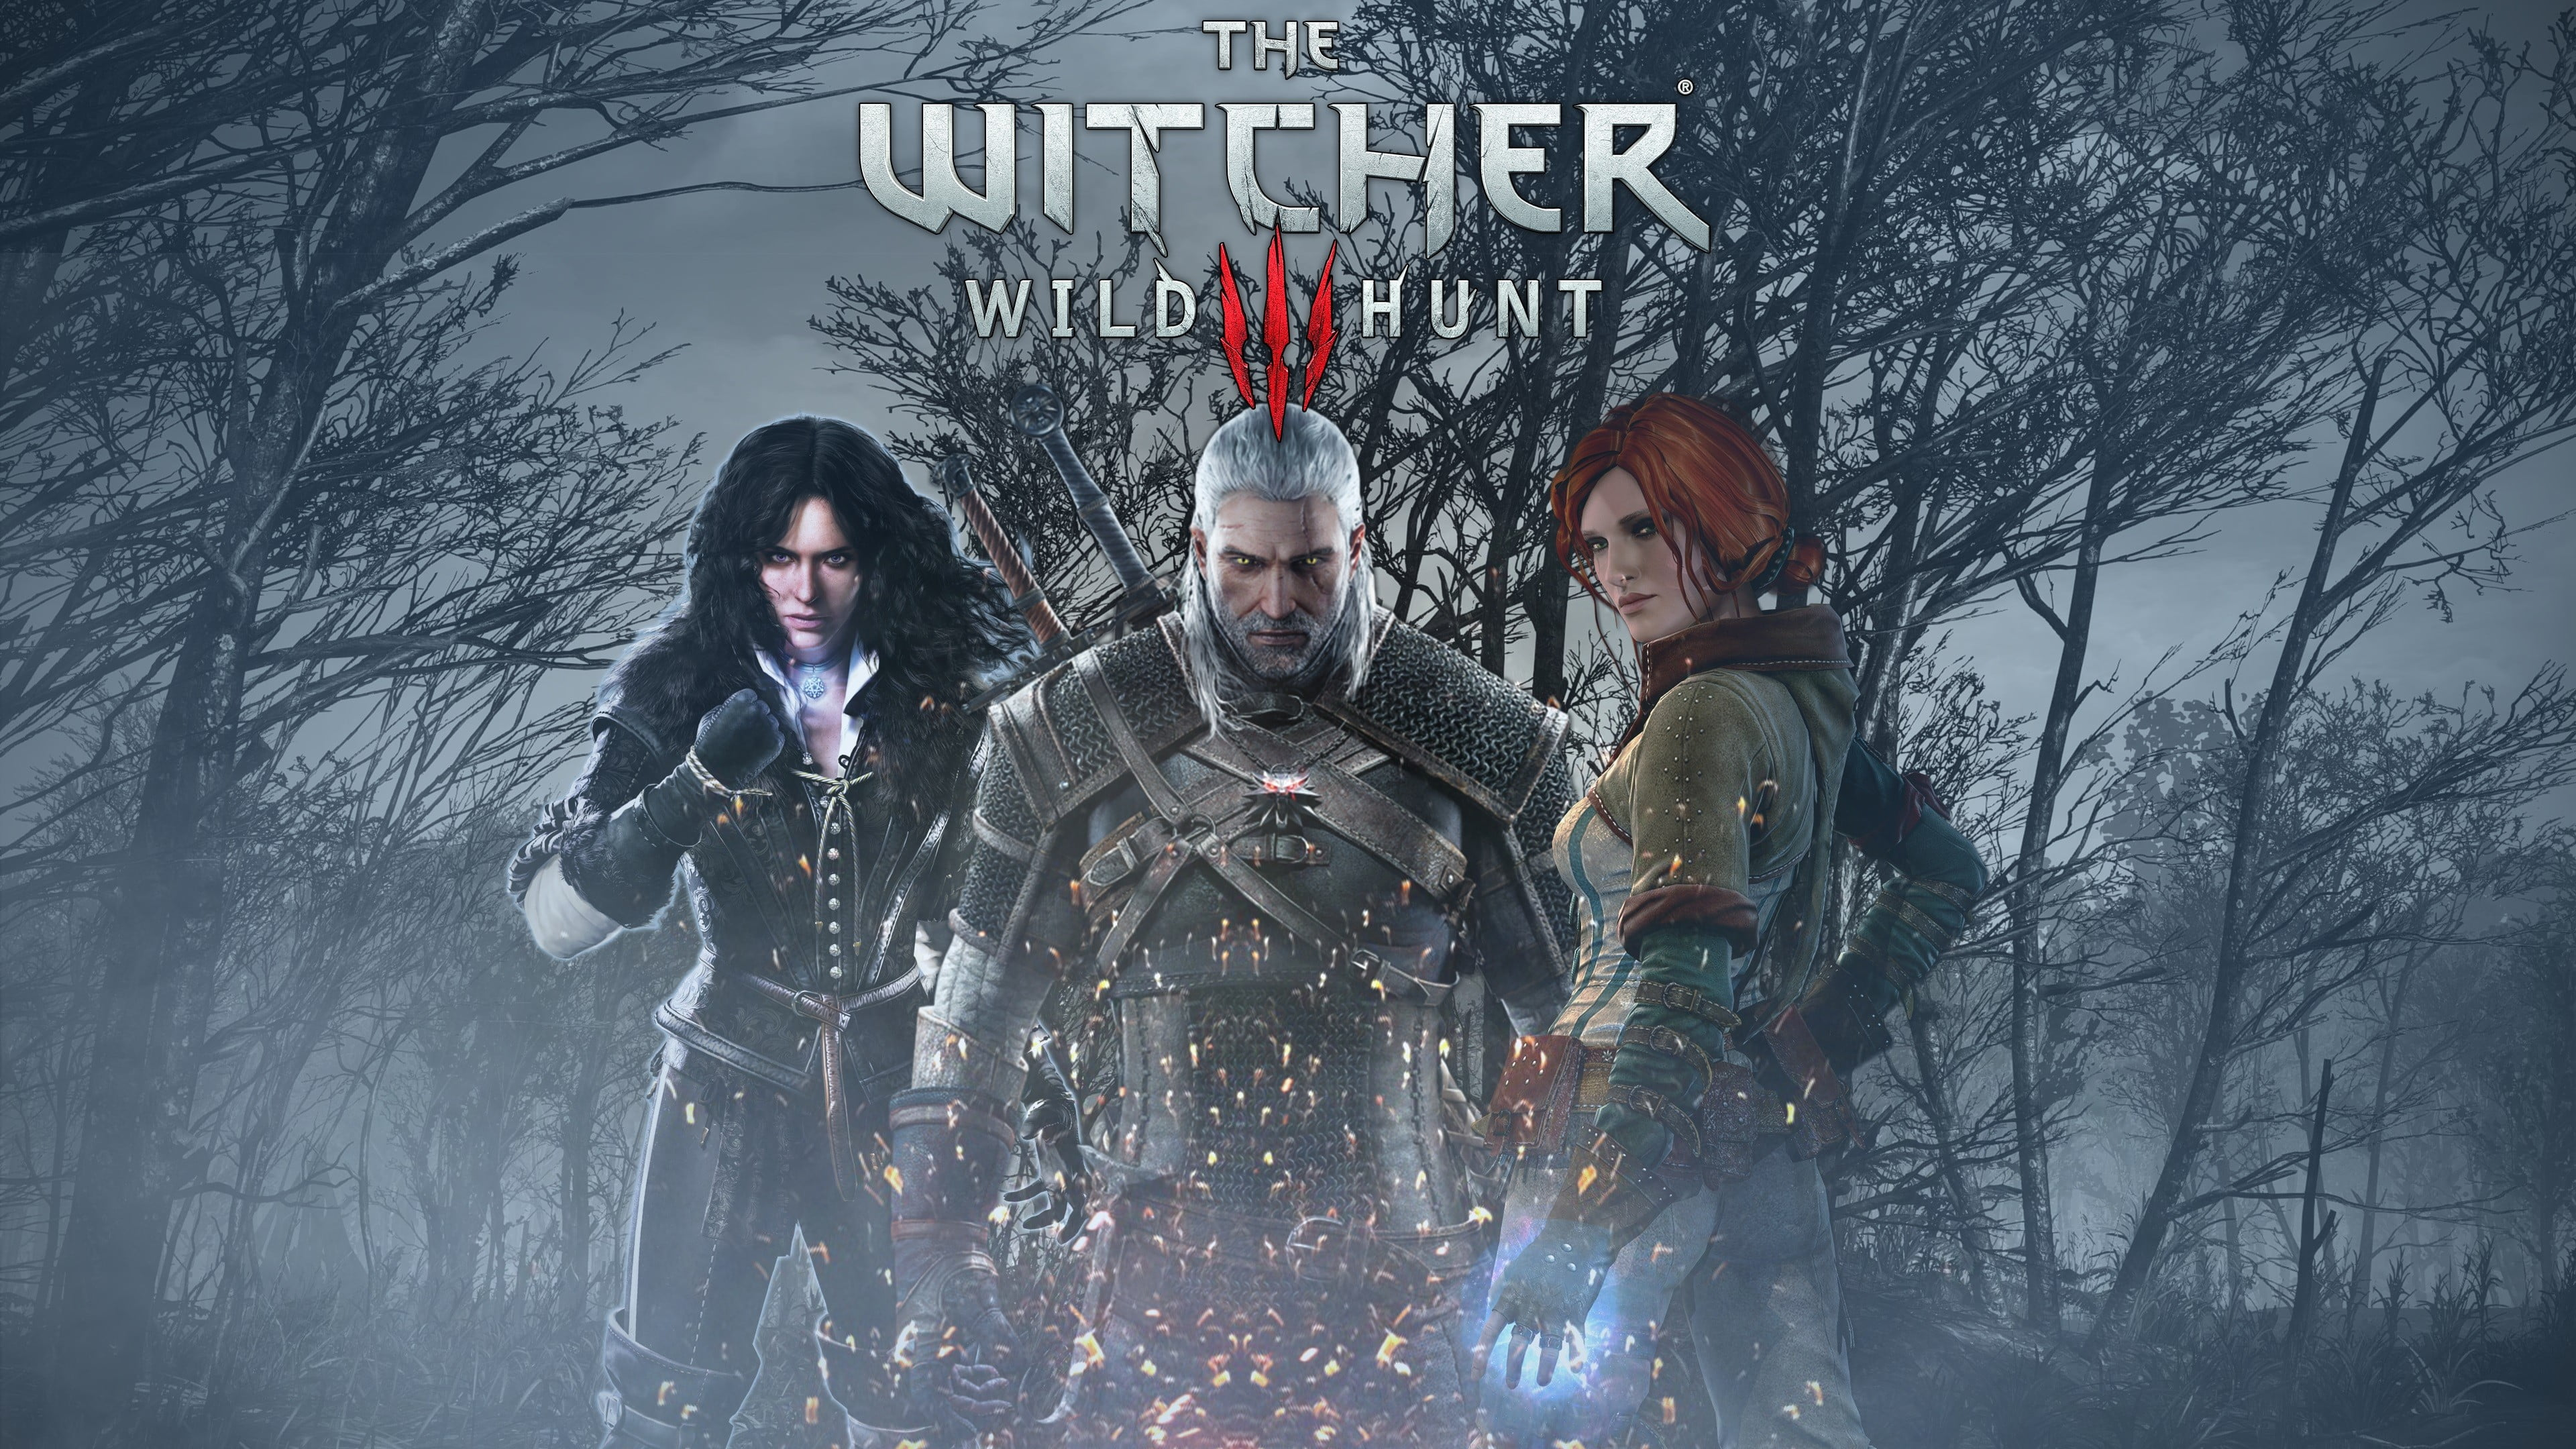 The Witcher 3 Wild Hunt Poster Wallpapers - Wallpaper Cave